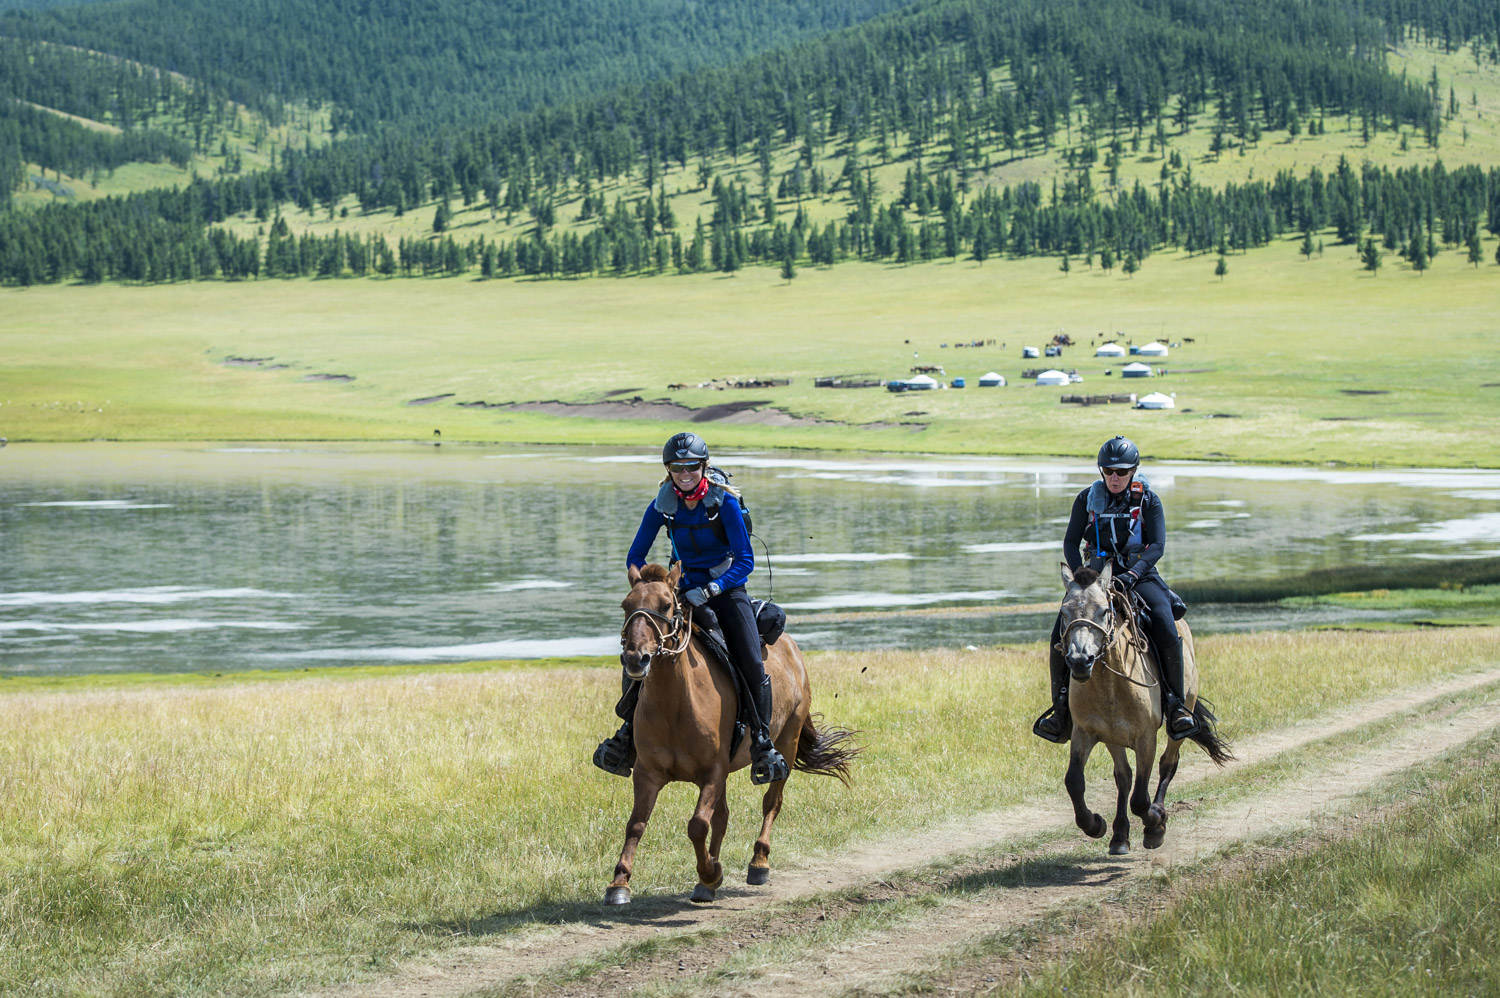 43 riders take on the challenge to ride the longest horse race (Credit: @Richard Dunwoody)